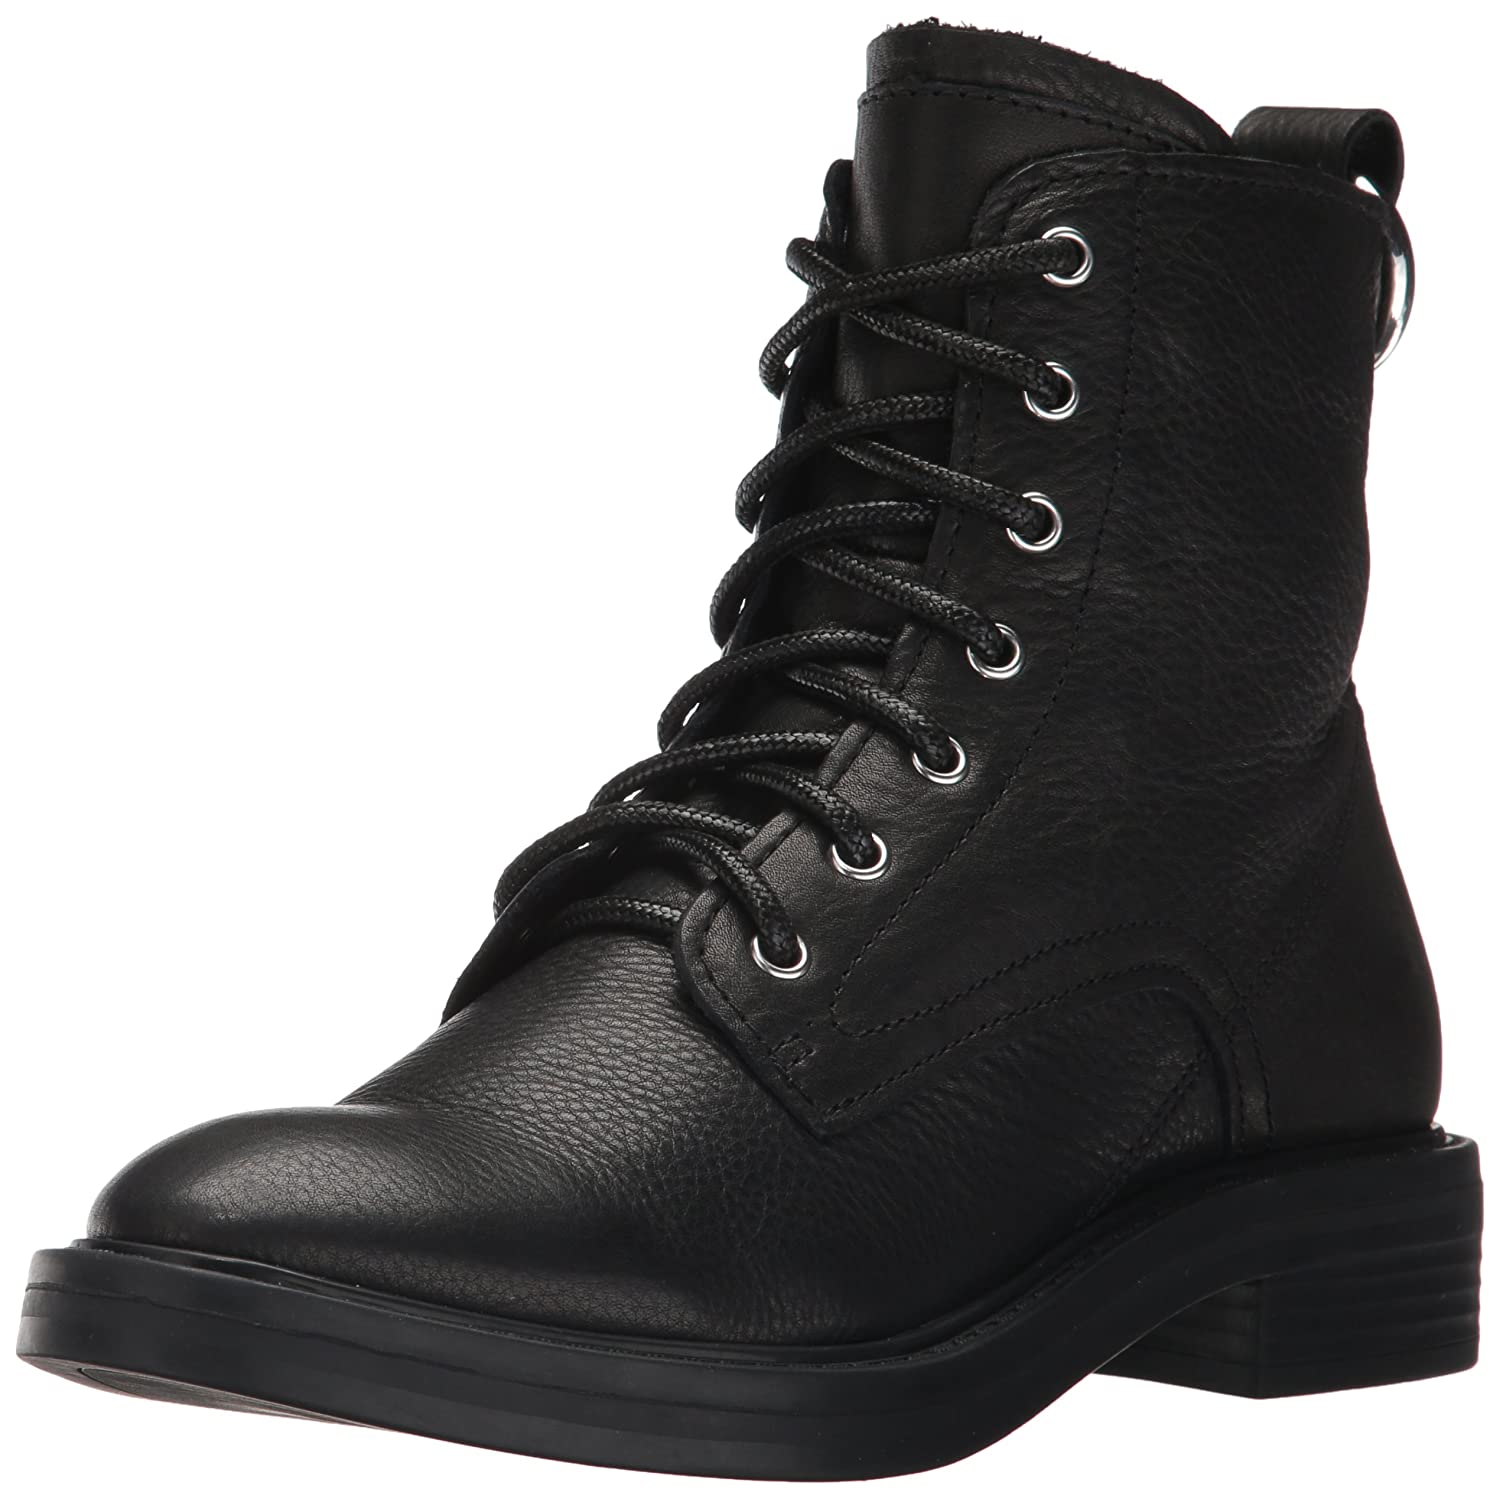 Dolce Vita Women's Bardot Combat Boot B072JVLDL4 6.5 B(M) US|Black Leather